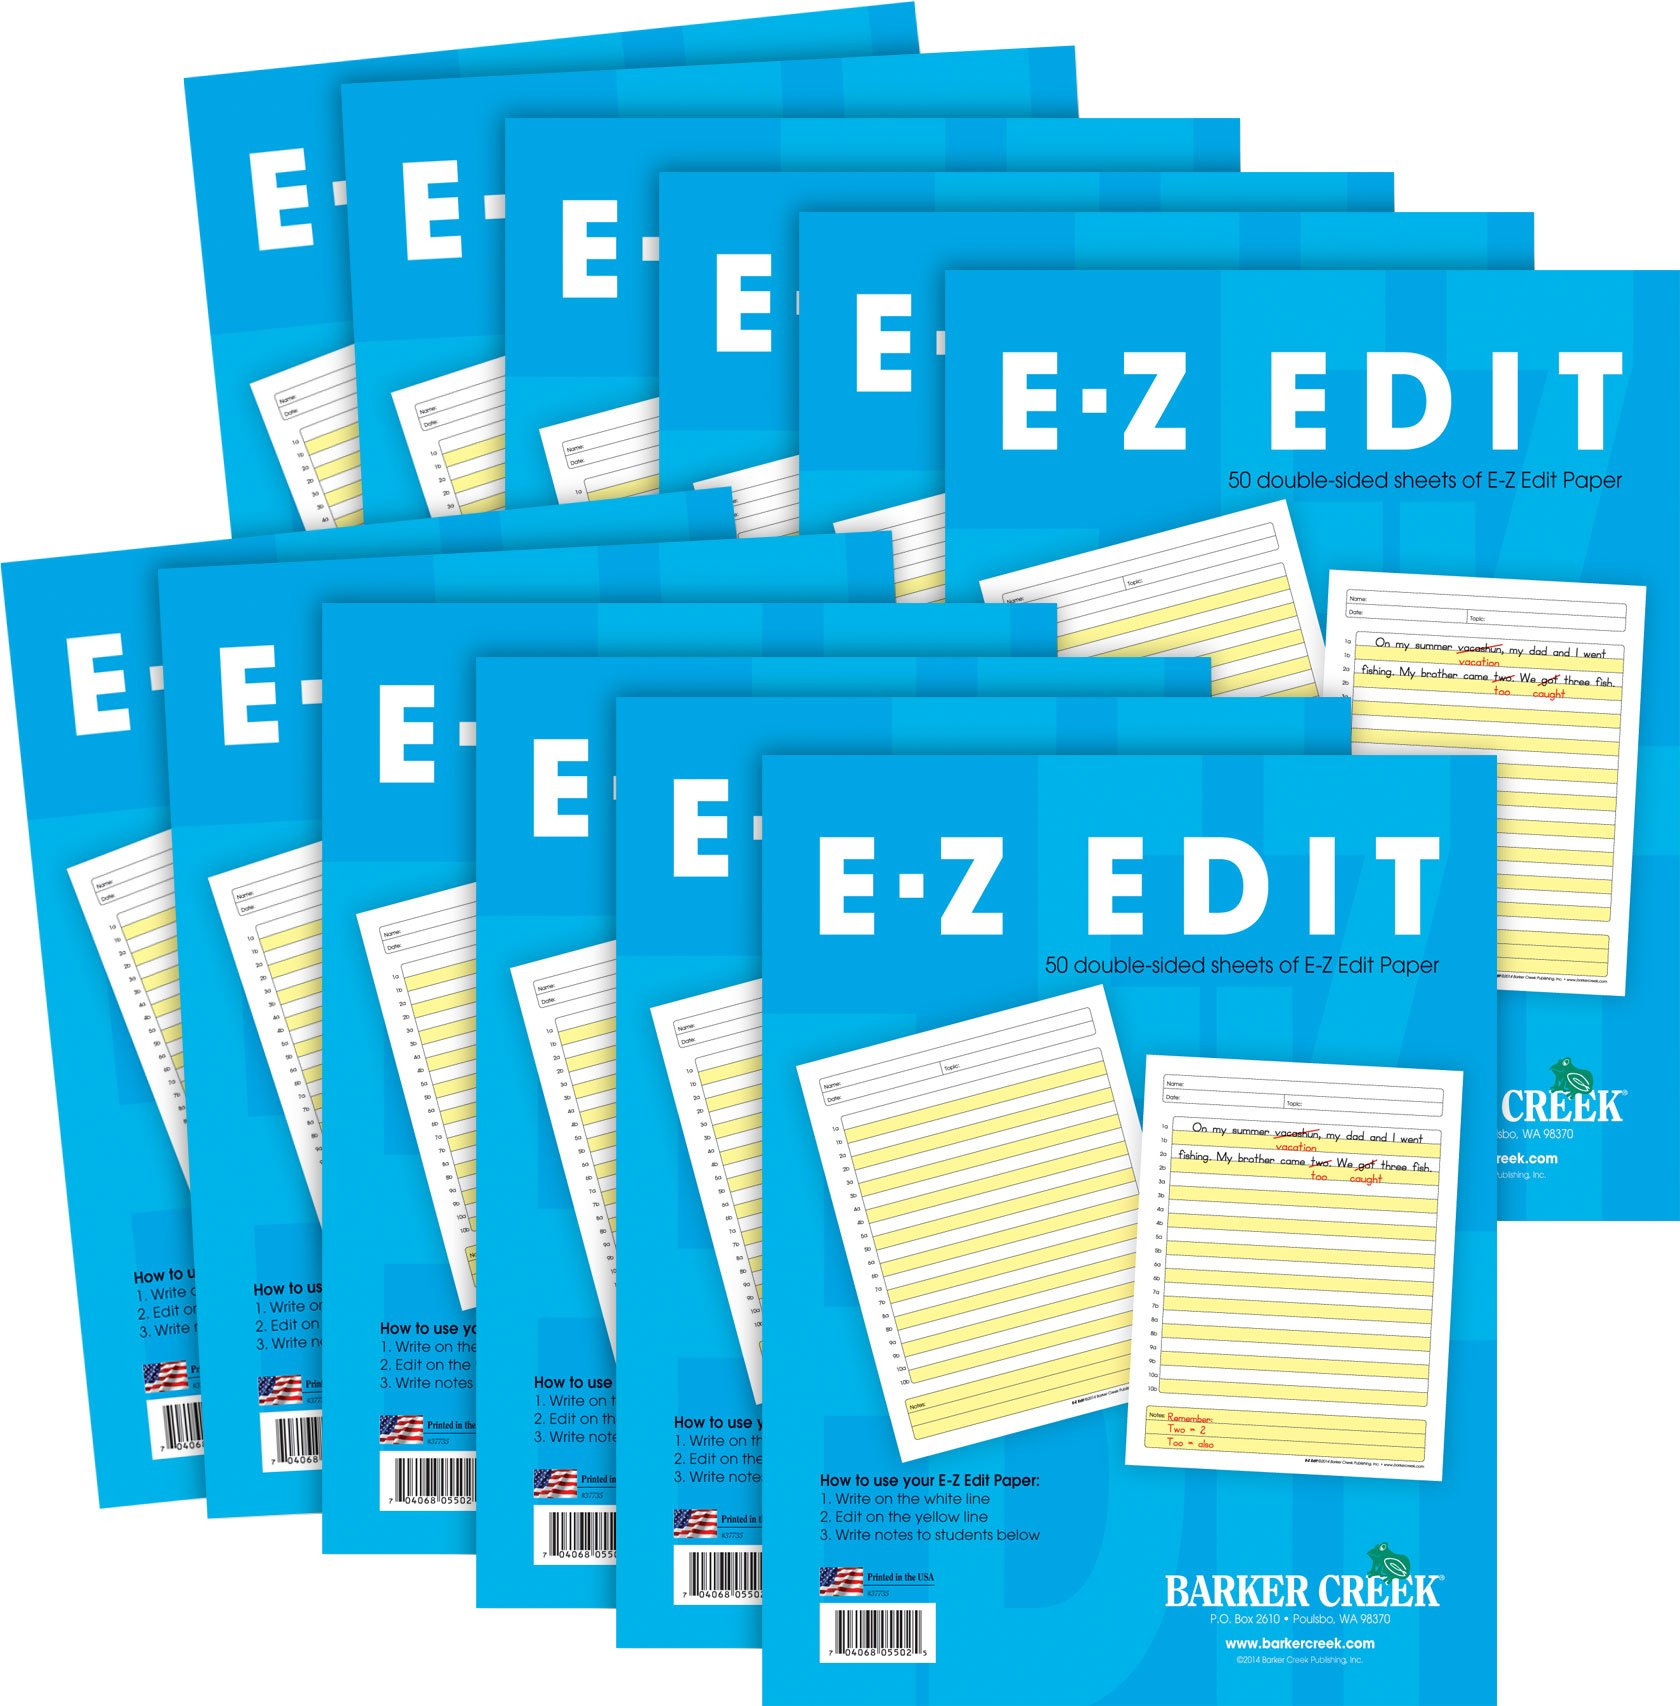 Barker Creek - Office Products E-Z Edit Paper, 12 Pack (BC-5502-12)